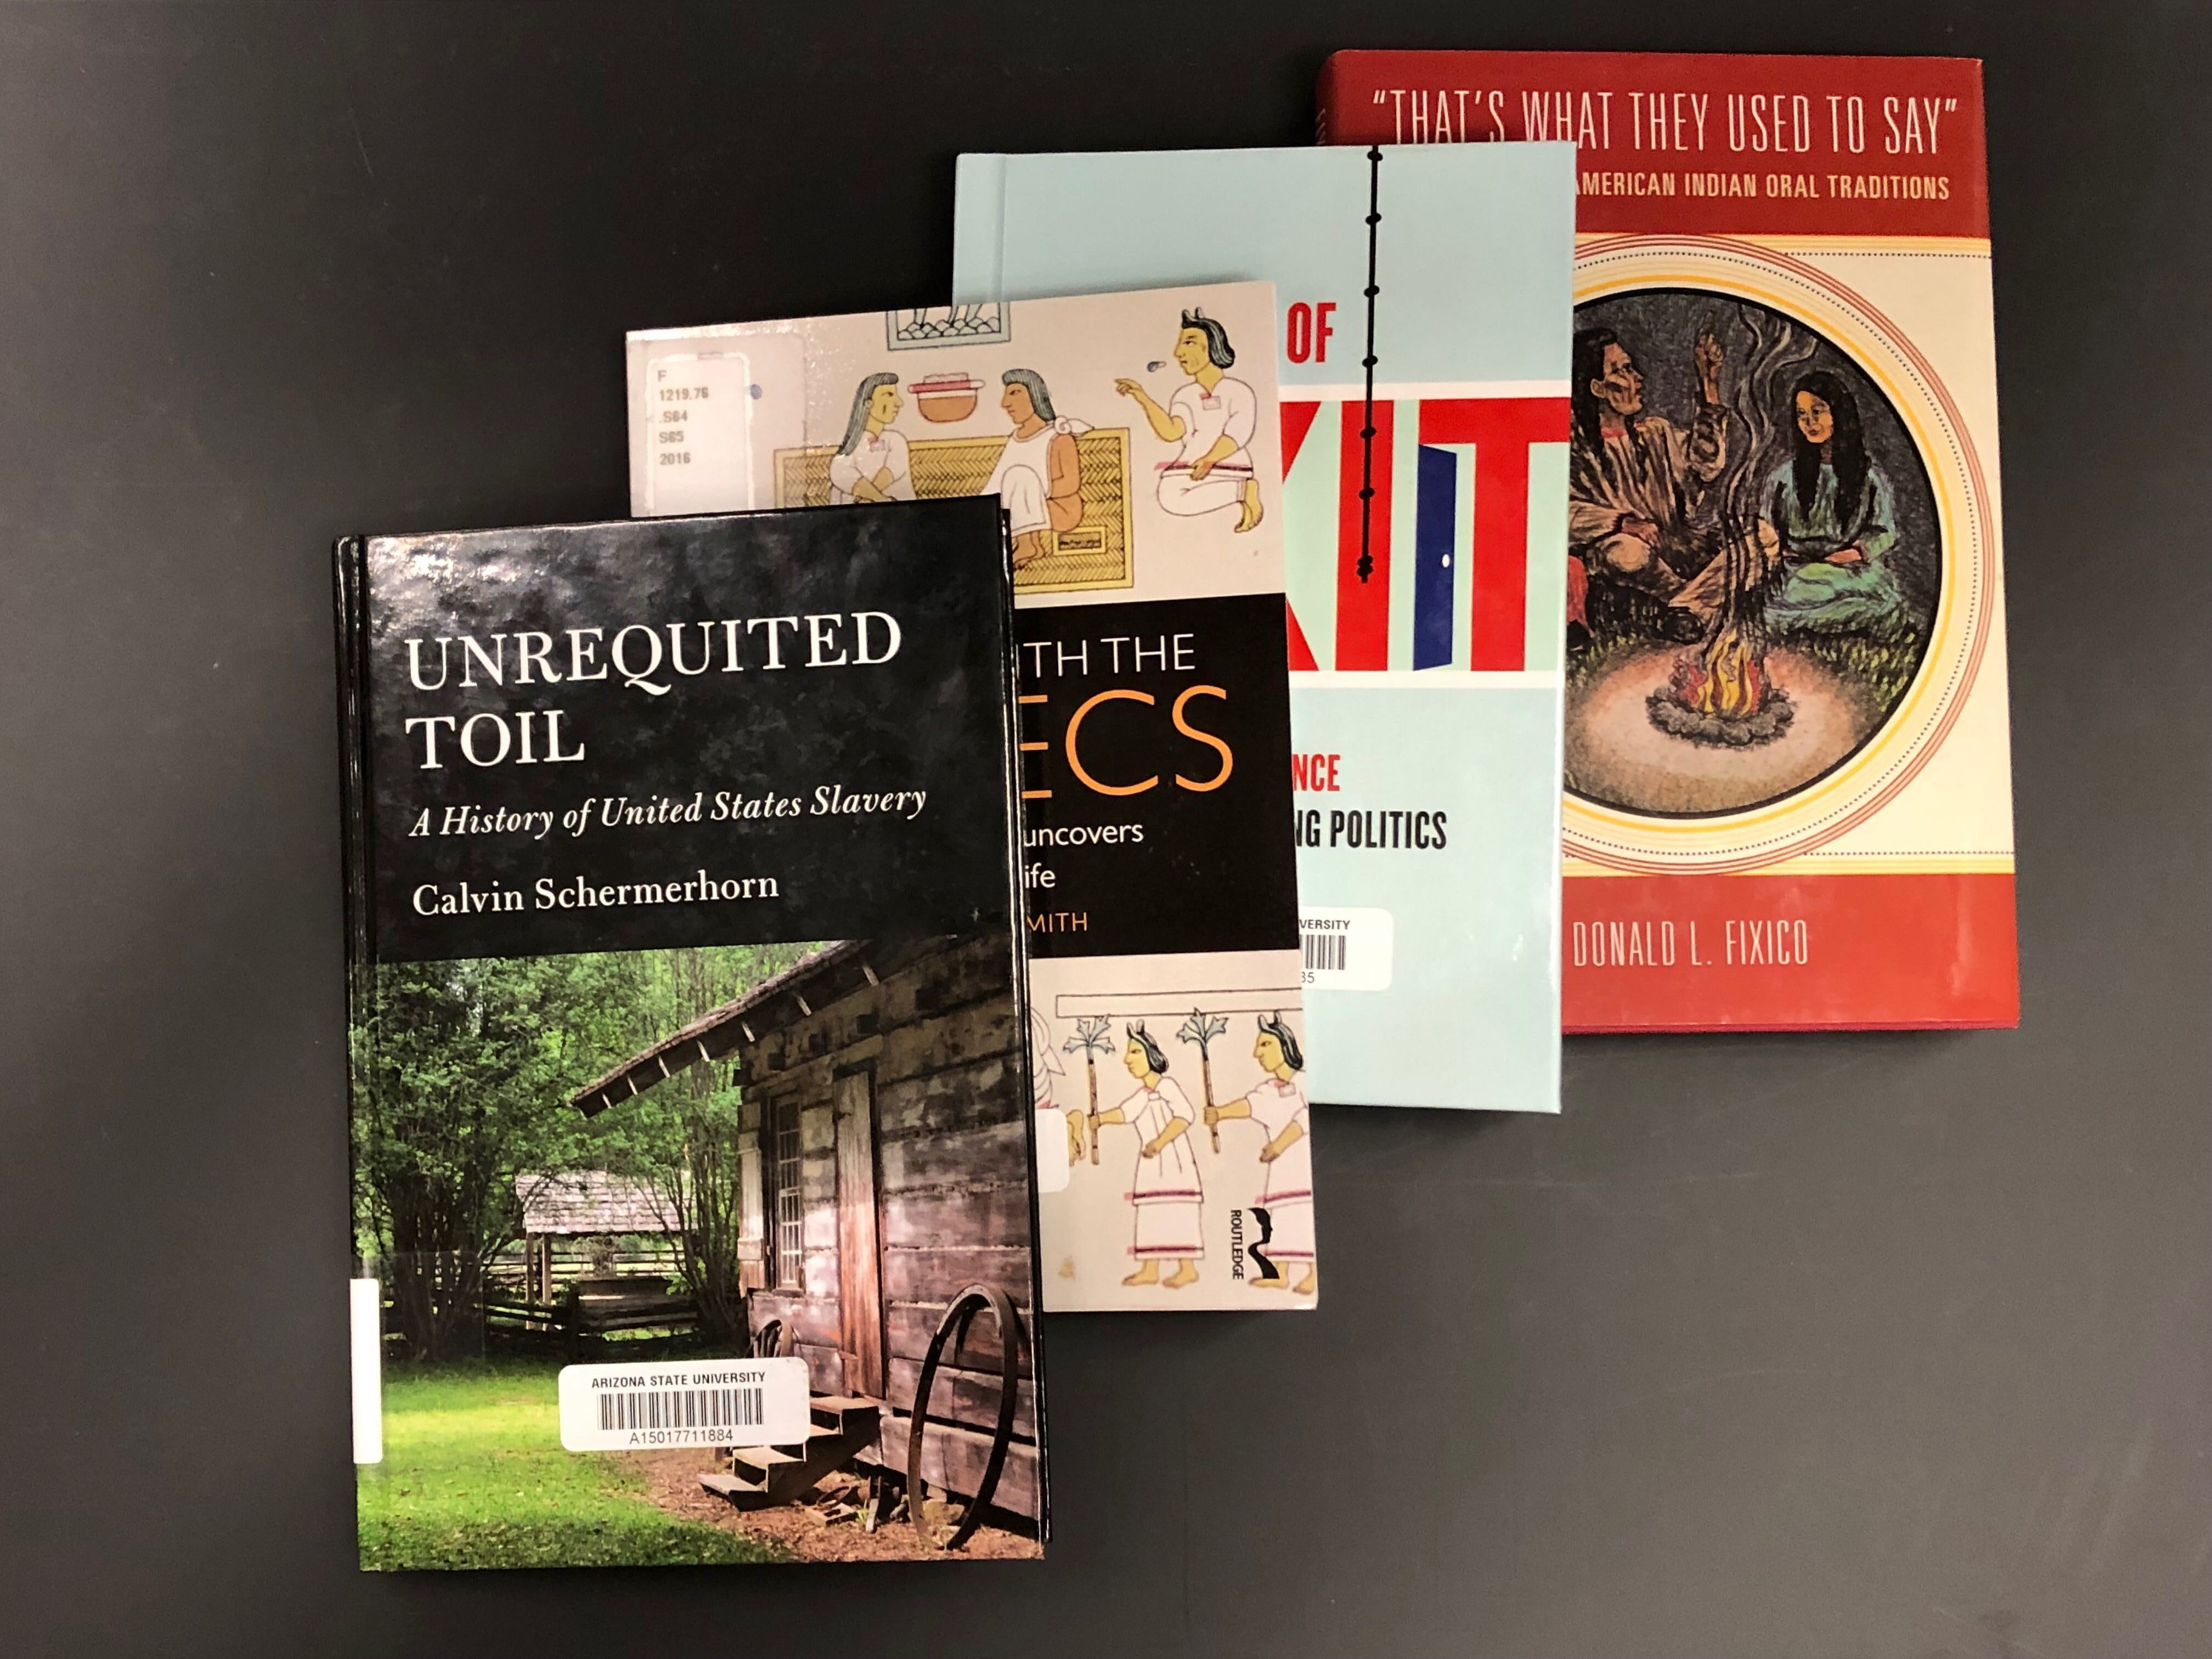 Four faculty books used for this project